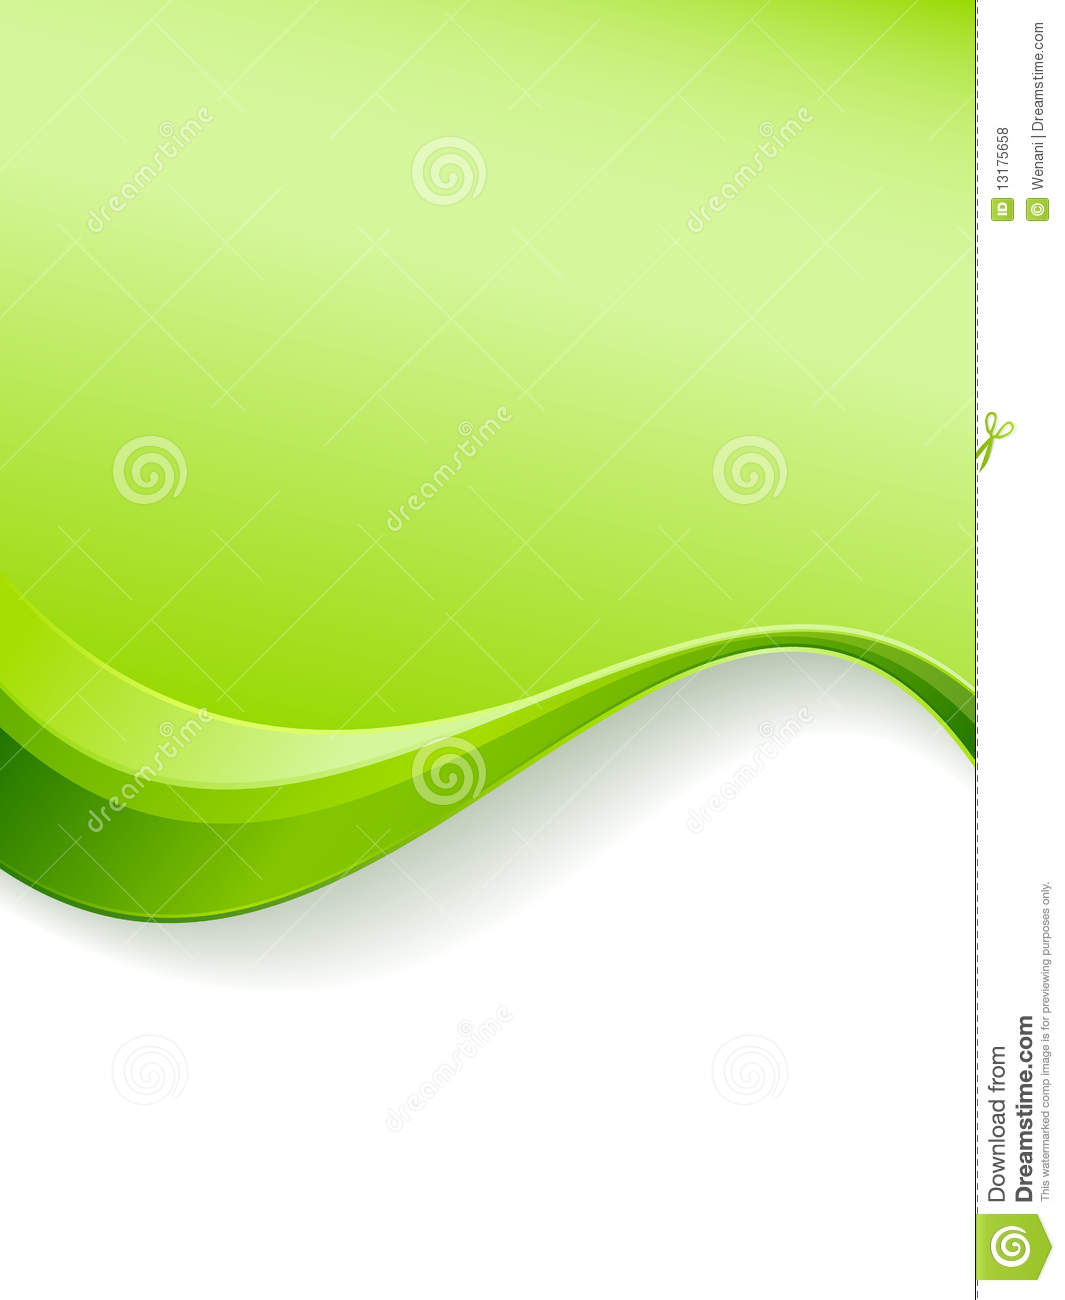 green wave background template stock vector - illustration of space